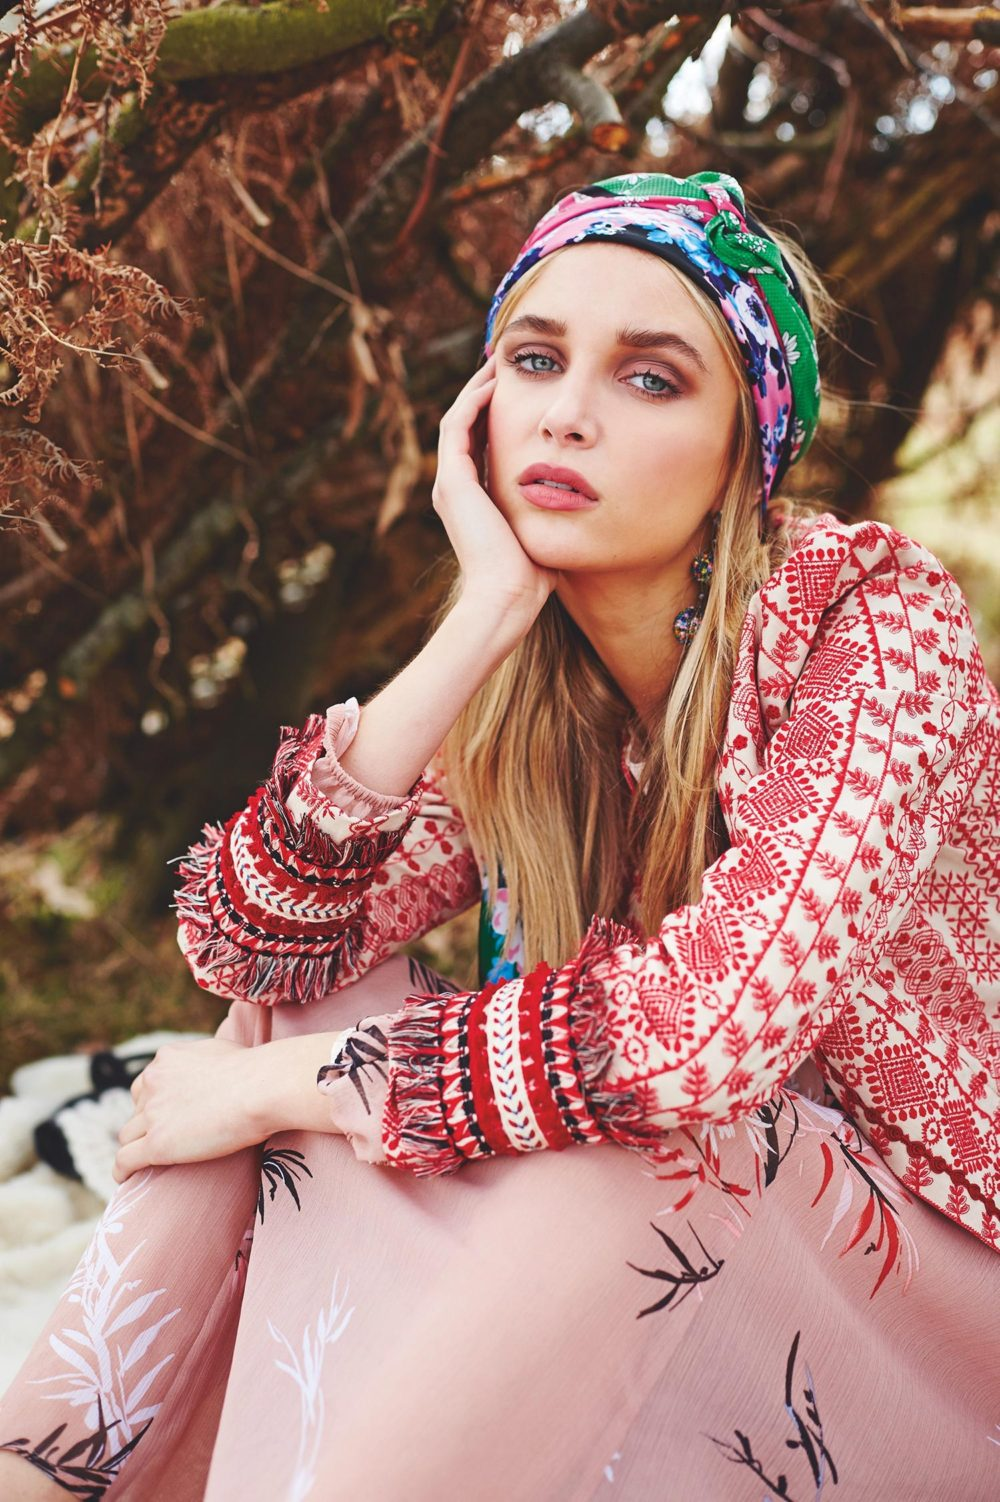 headband and patterned top